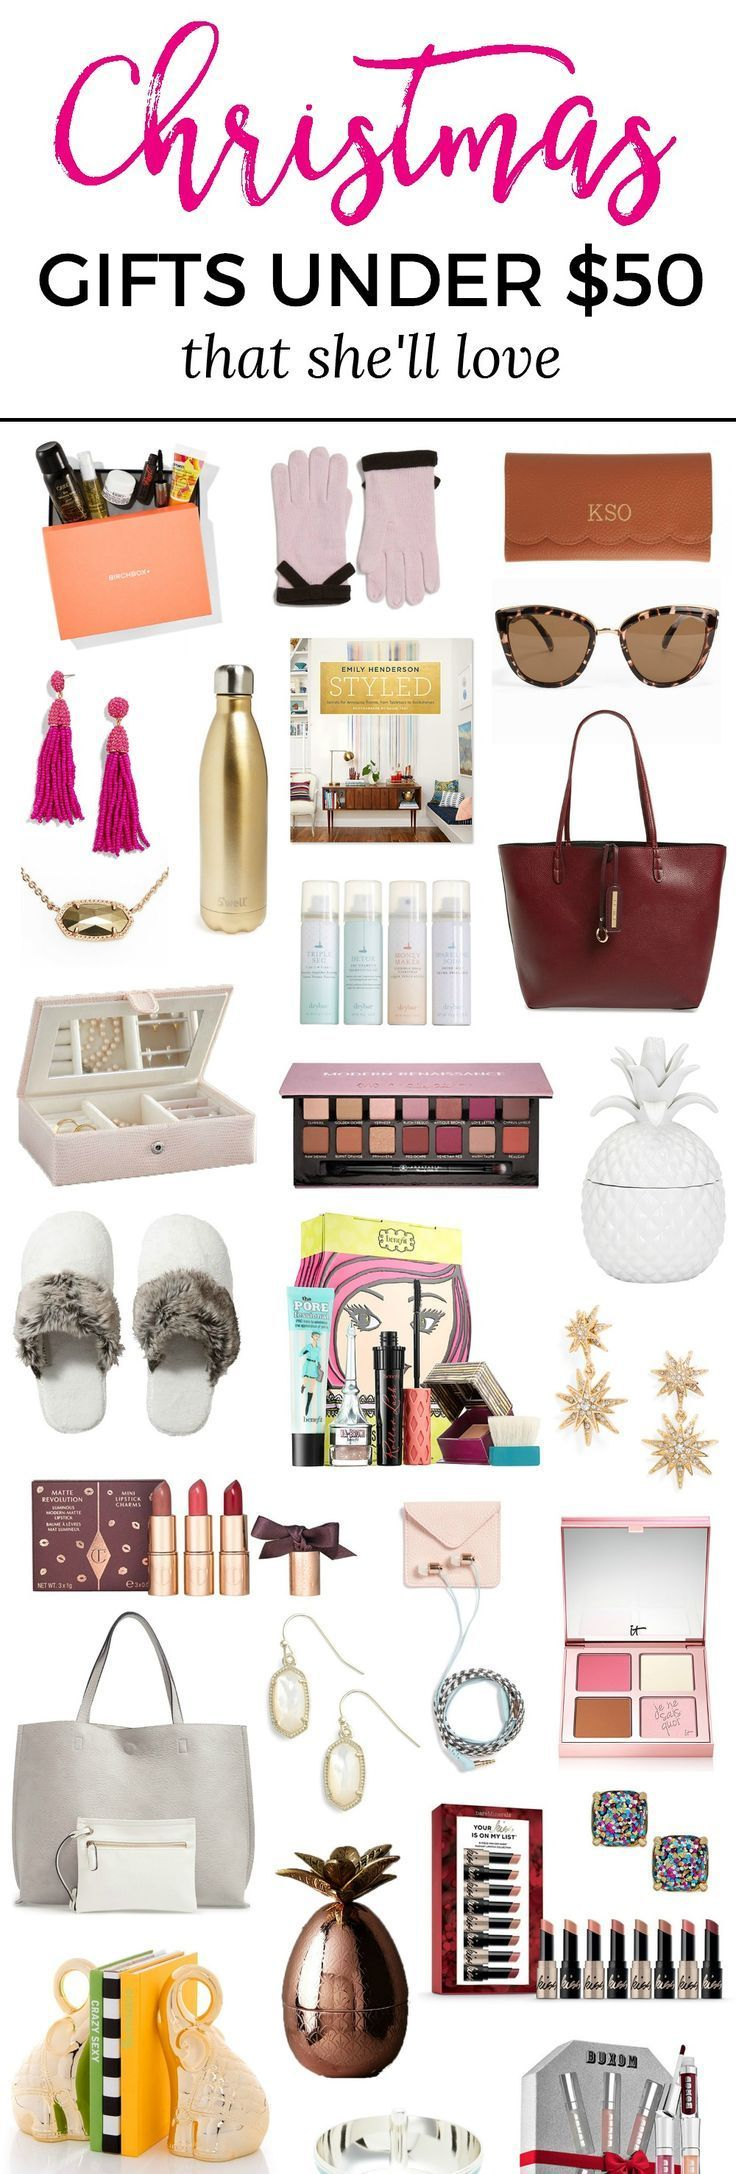 The best Christmas gift ideas for women under 50